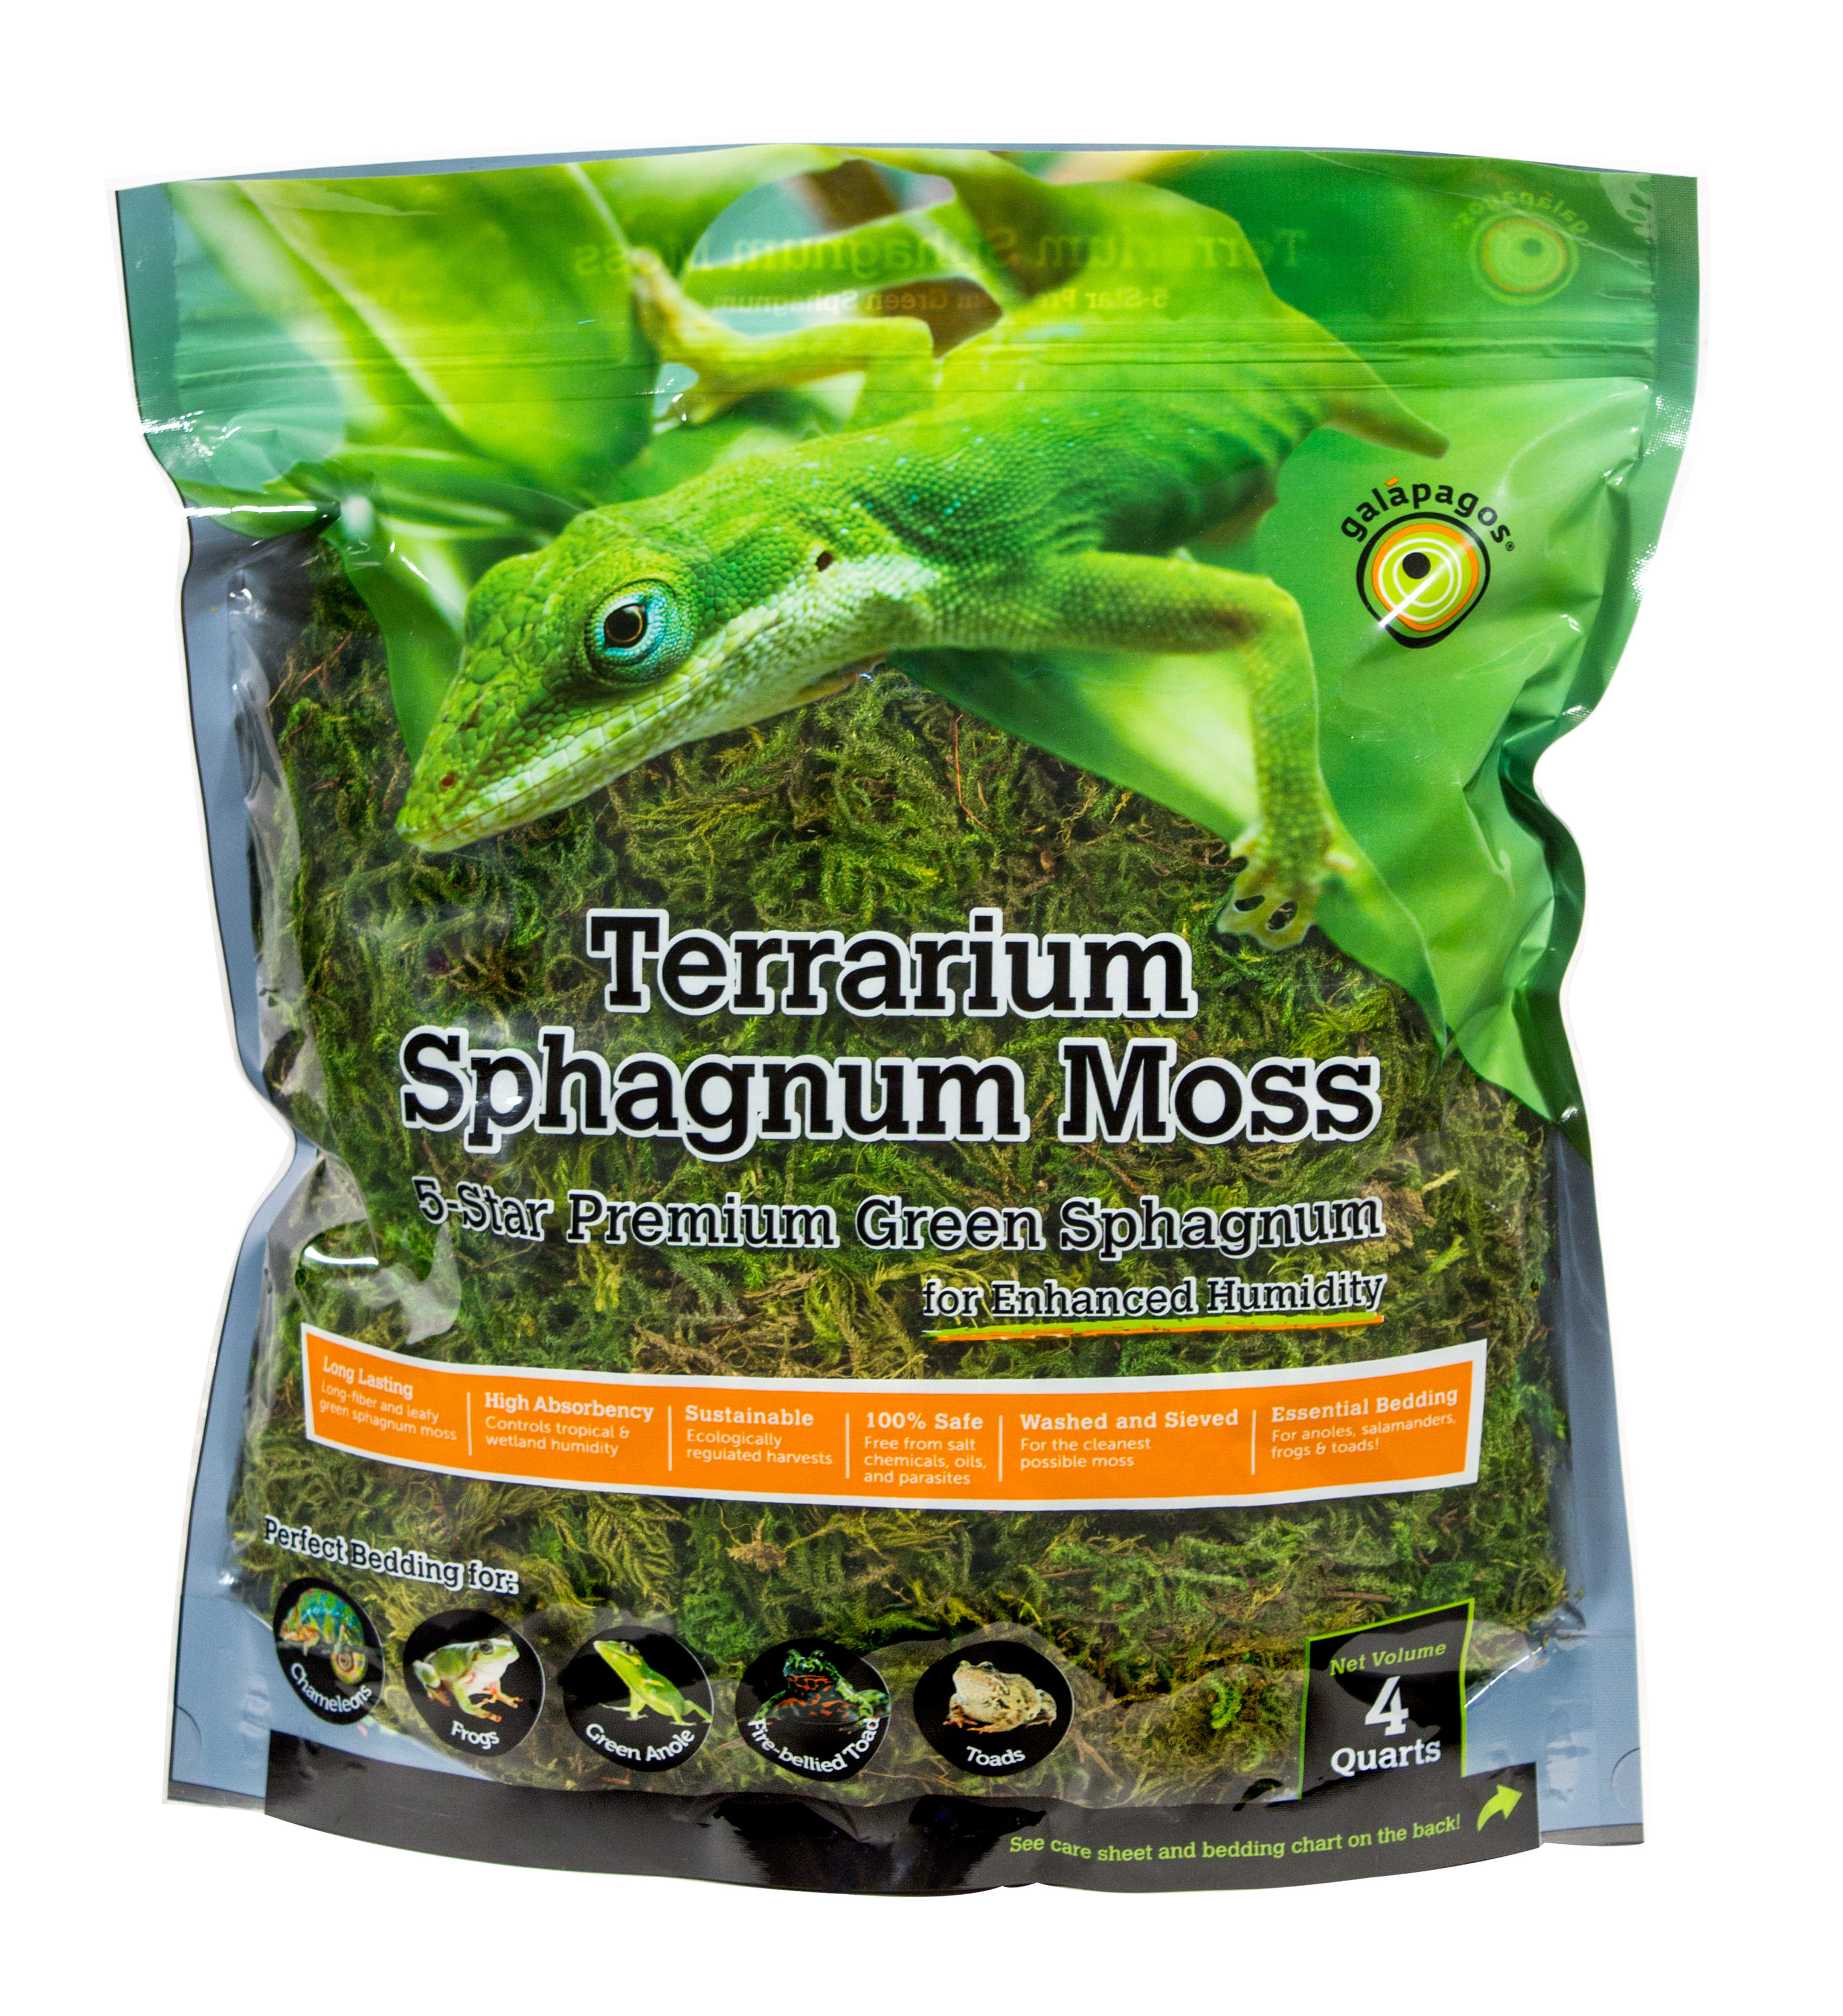 Galapagos (05213) Terrarium Sphagnum Moss, Fresh Green, 4qt Stand-Up Pouch